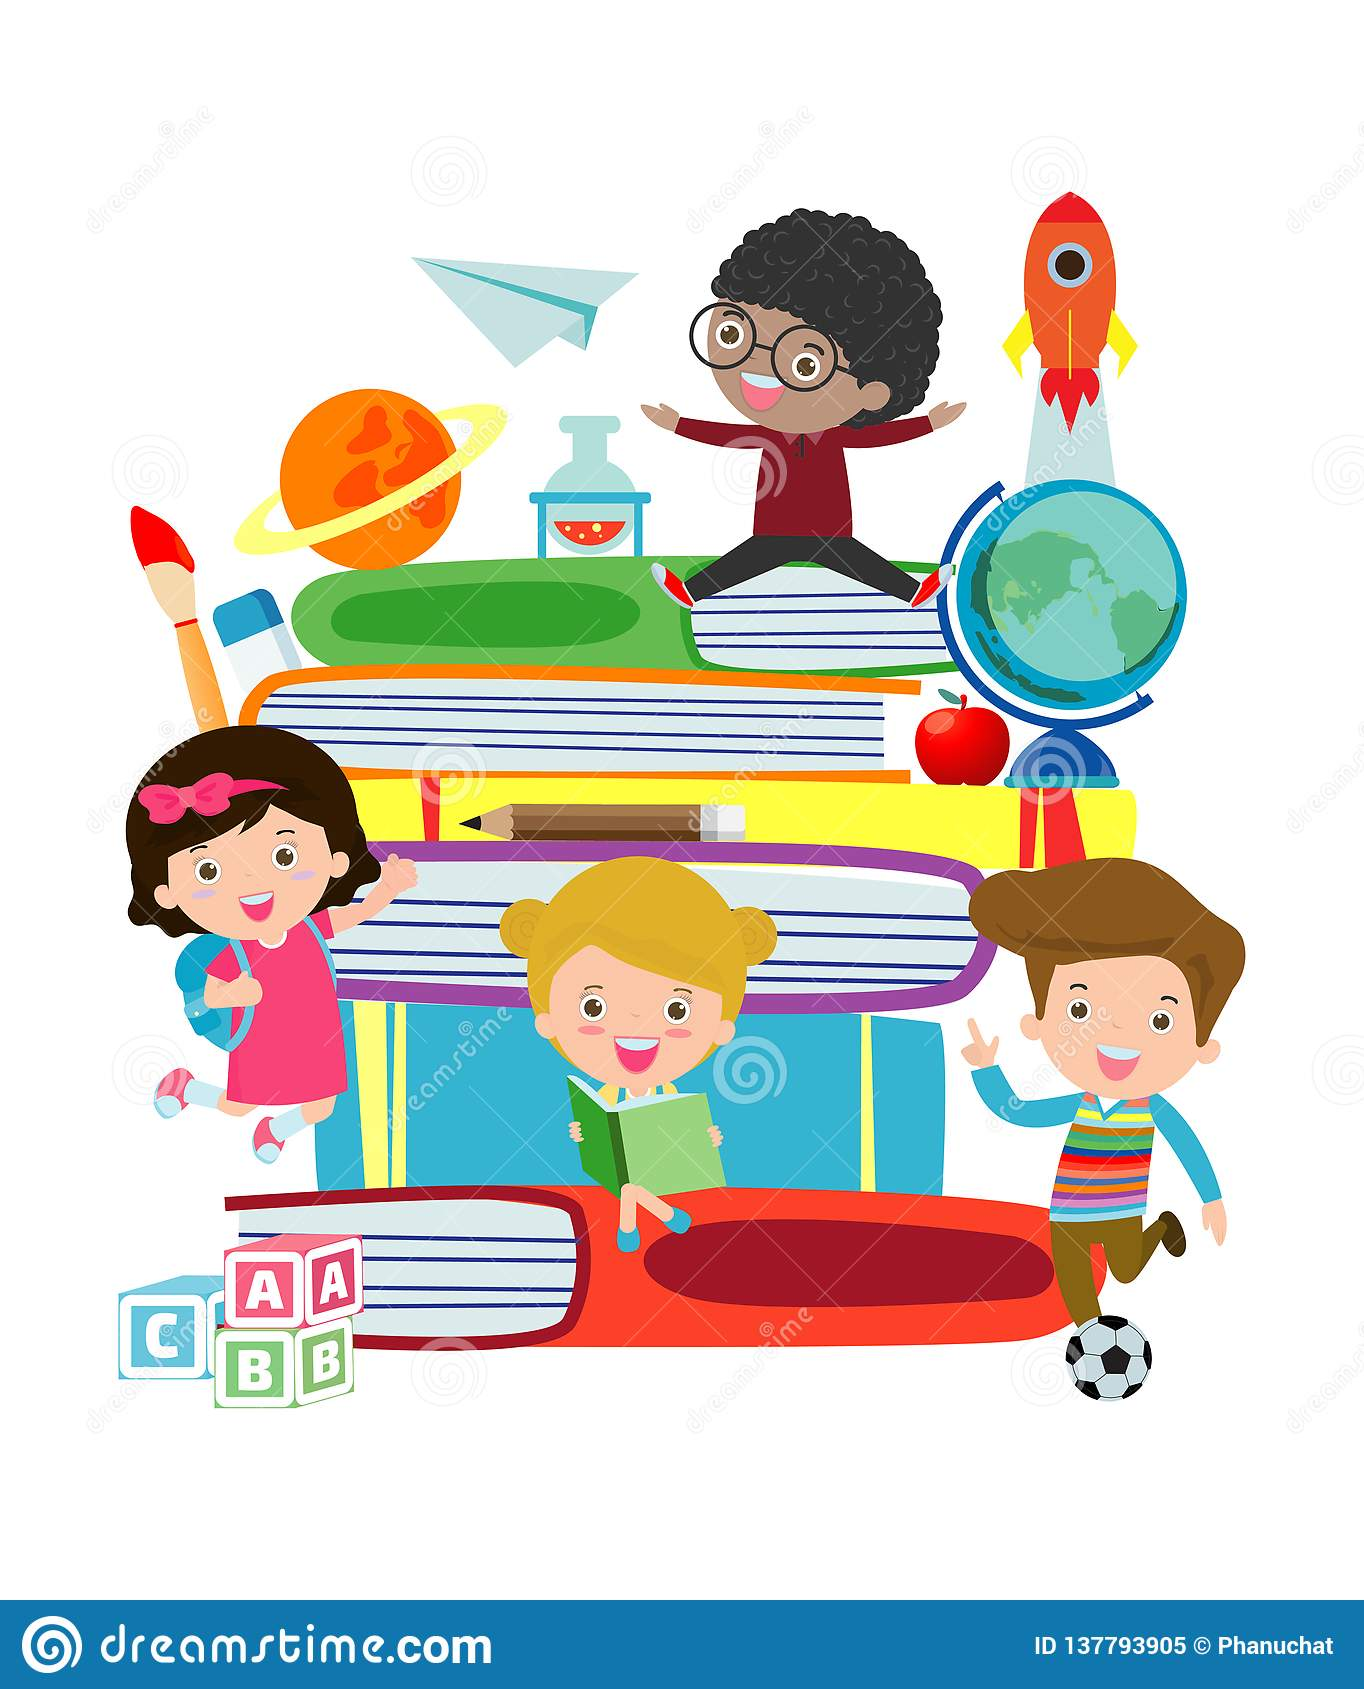 cute kids reading book cute children reading books happy children while reading books vector illustration on white background stock vector illustration of education books 137793905 https www dreamstime com cute kids reading book children books happy vector illustration white background education concept image137793905